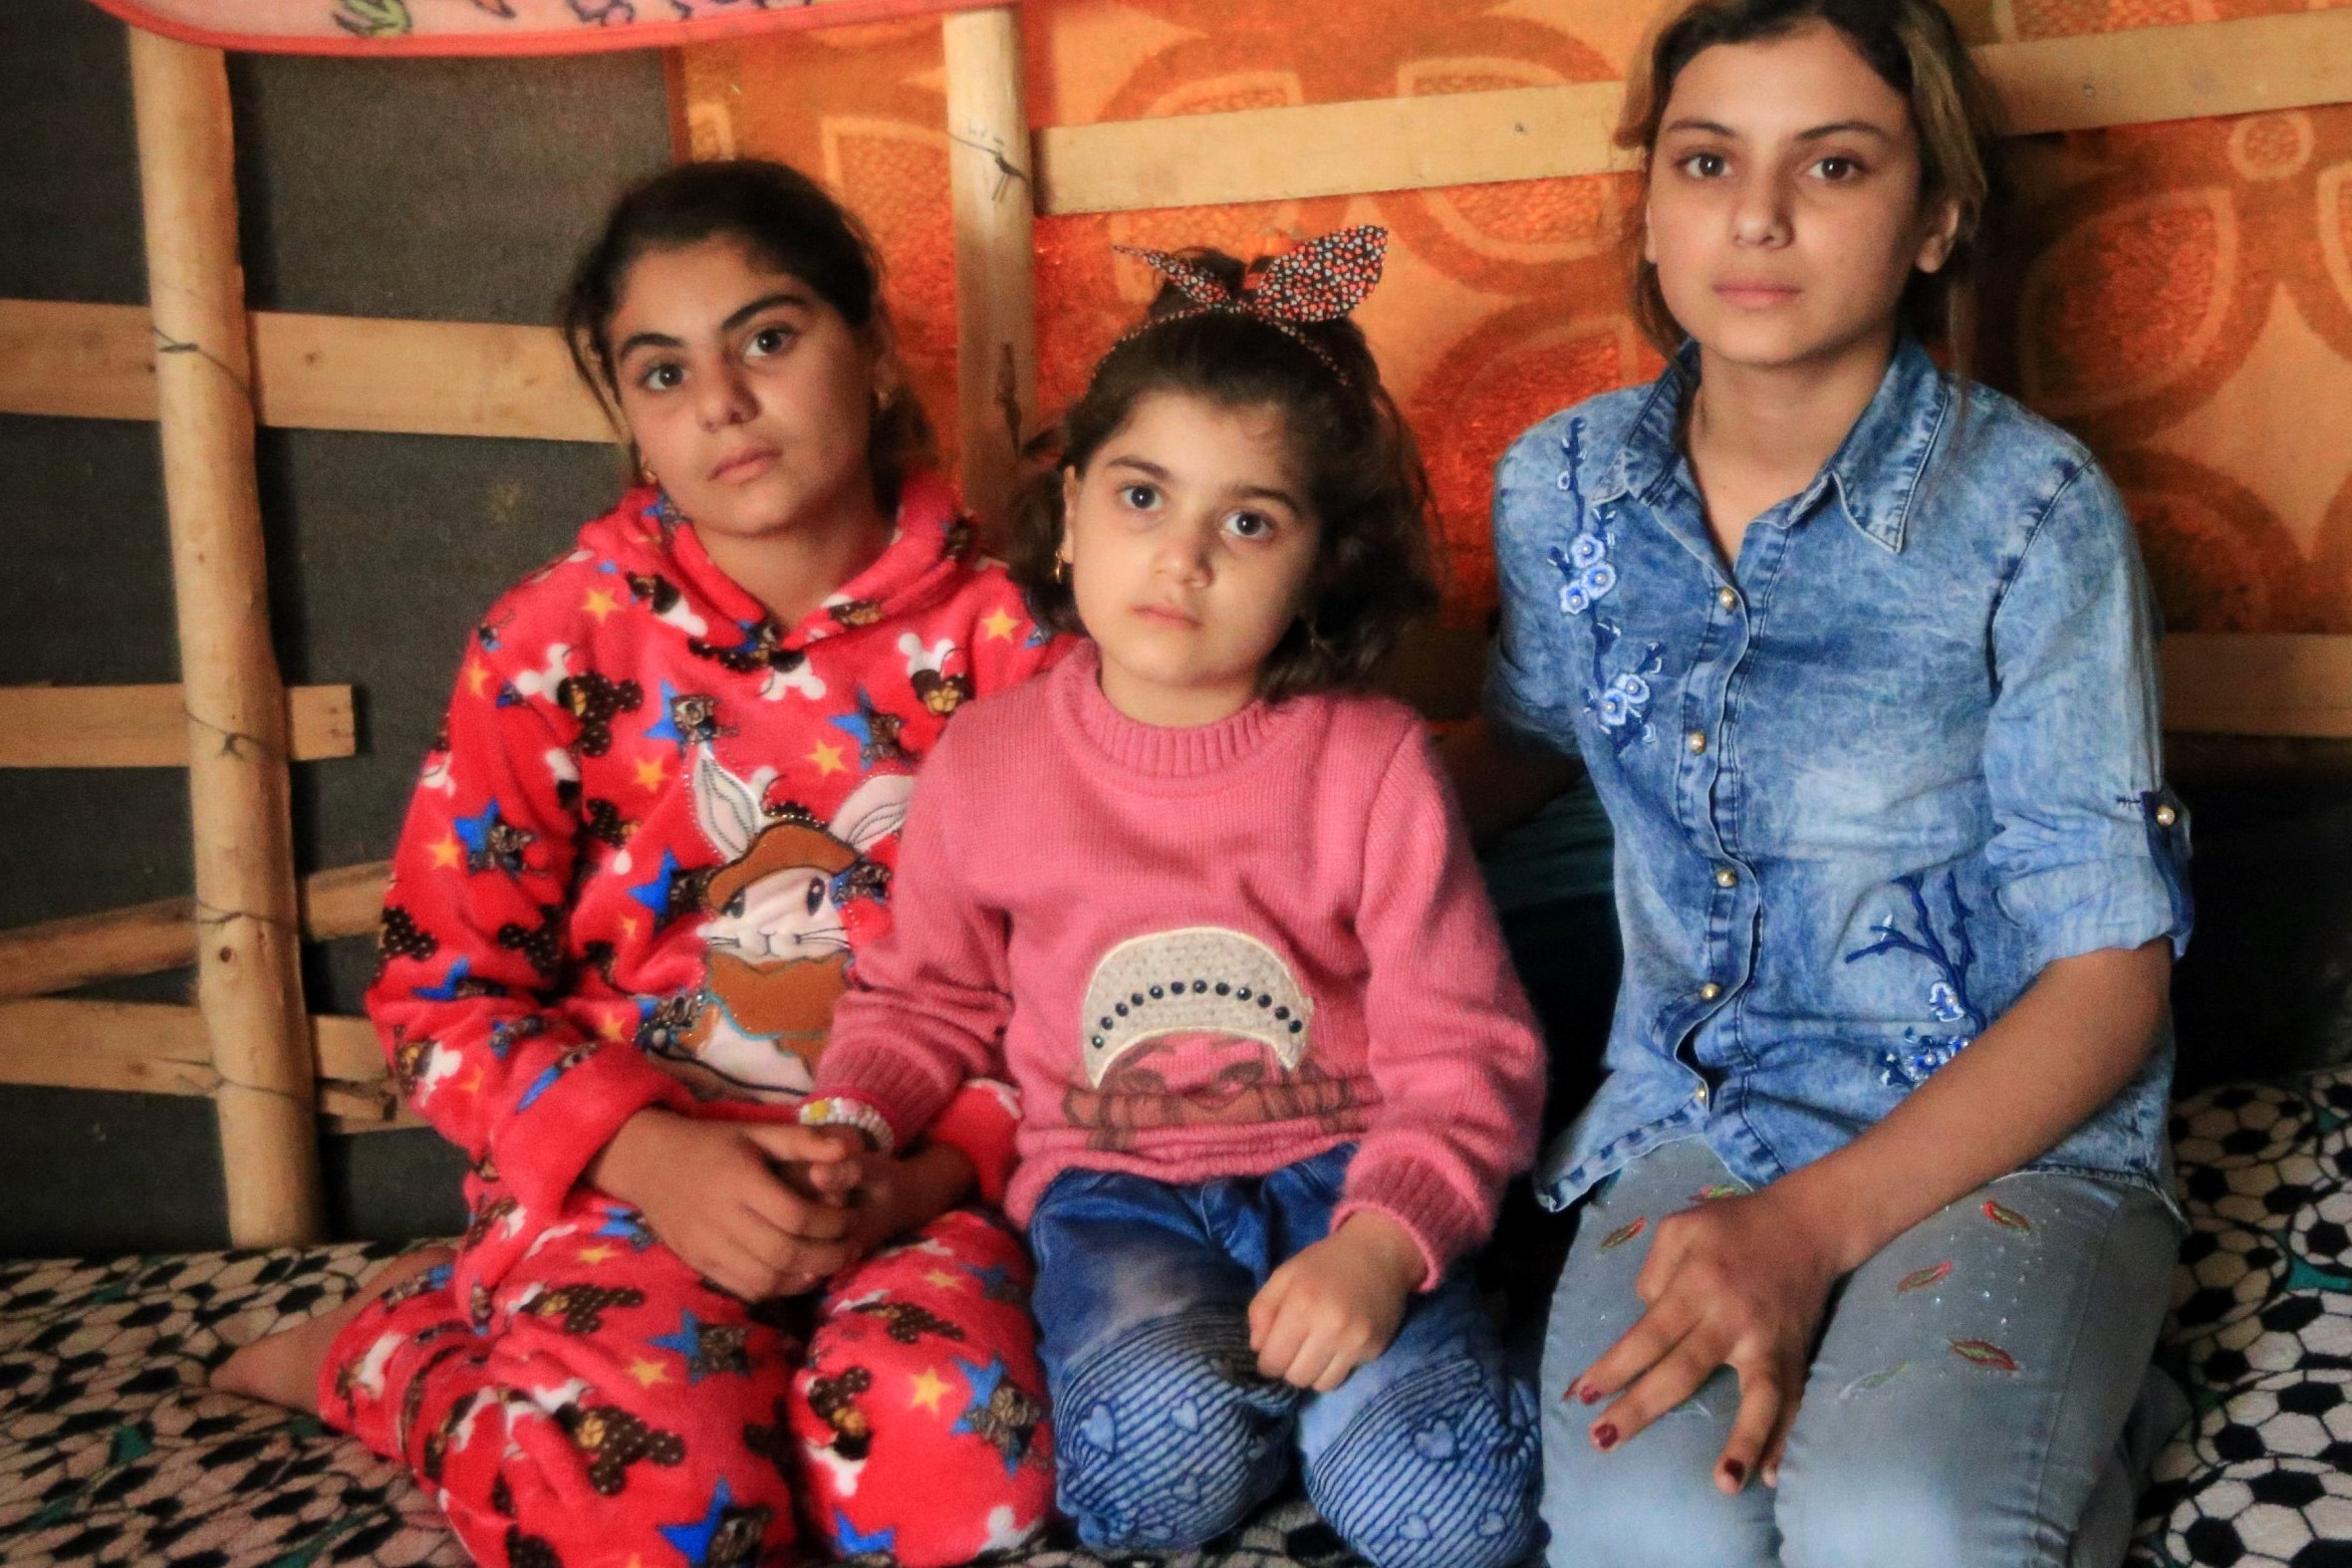 Yazidi Sisters in ISIS Captivity Reunite After Three Years